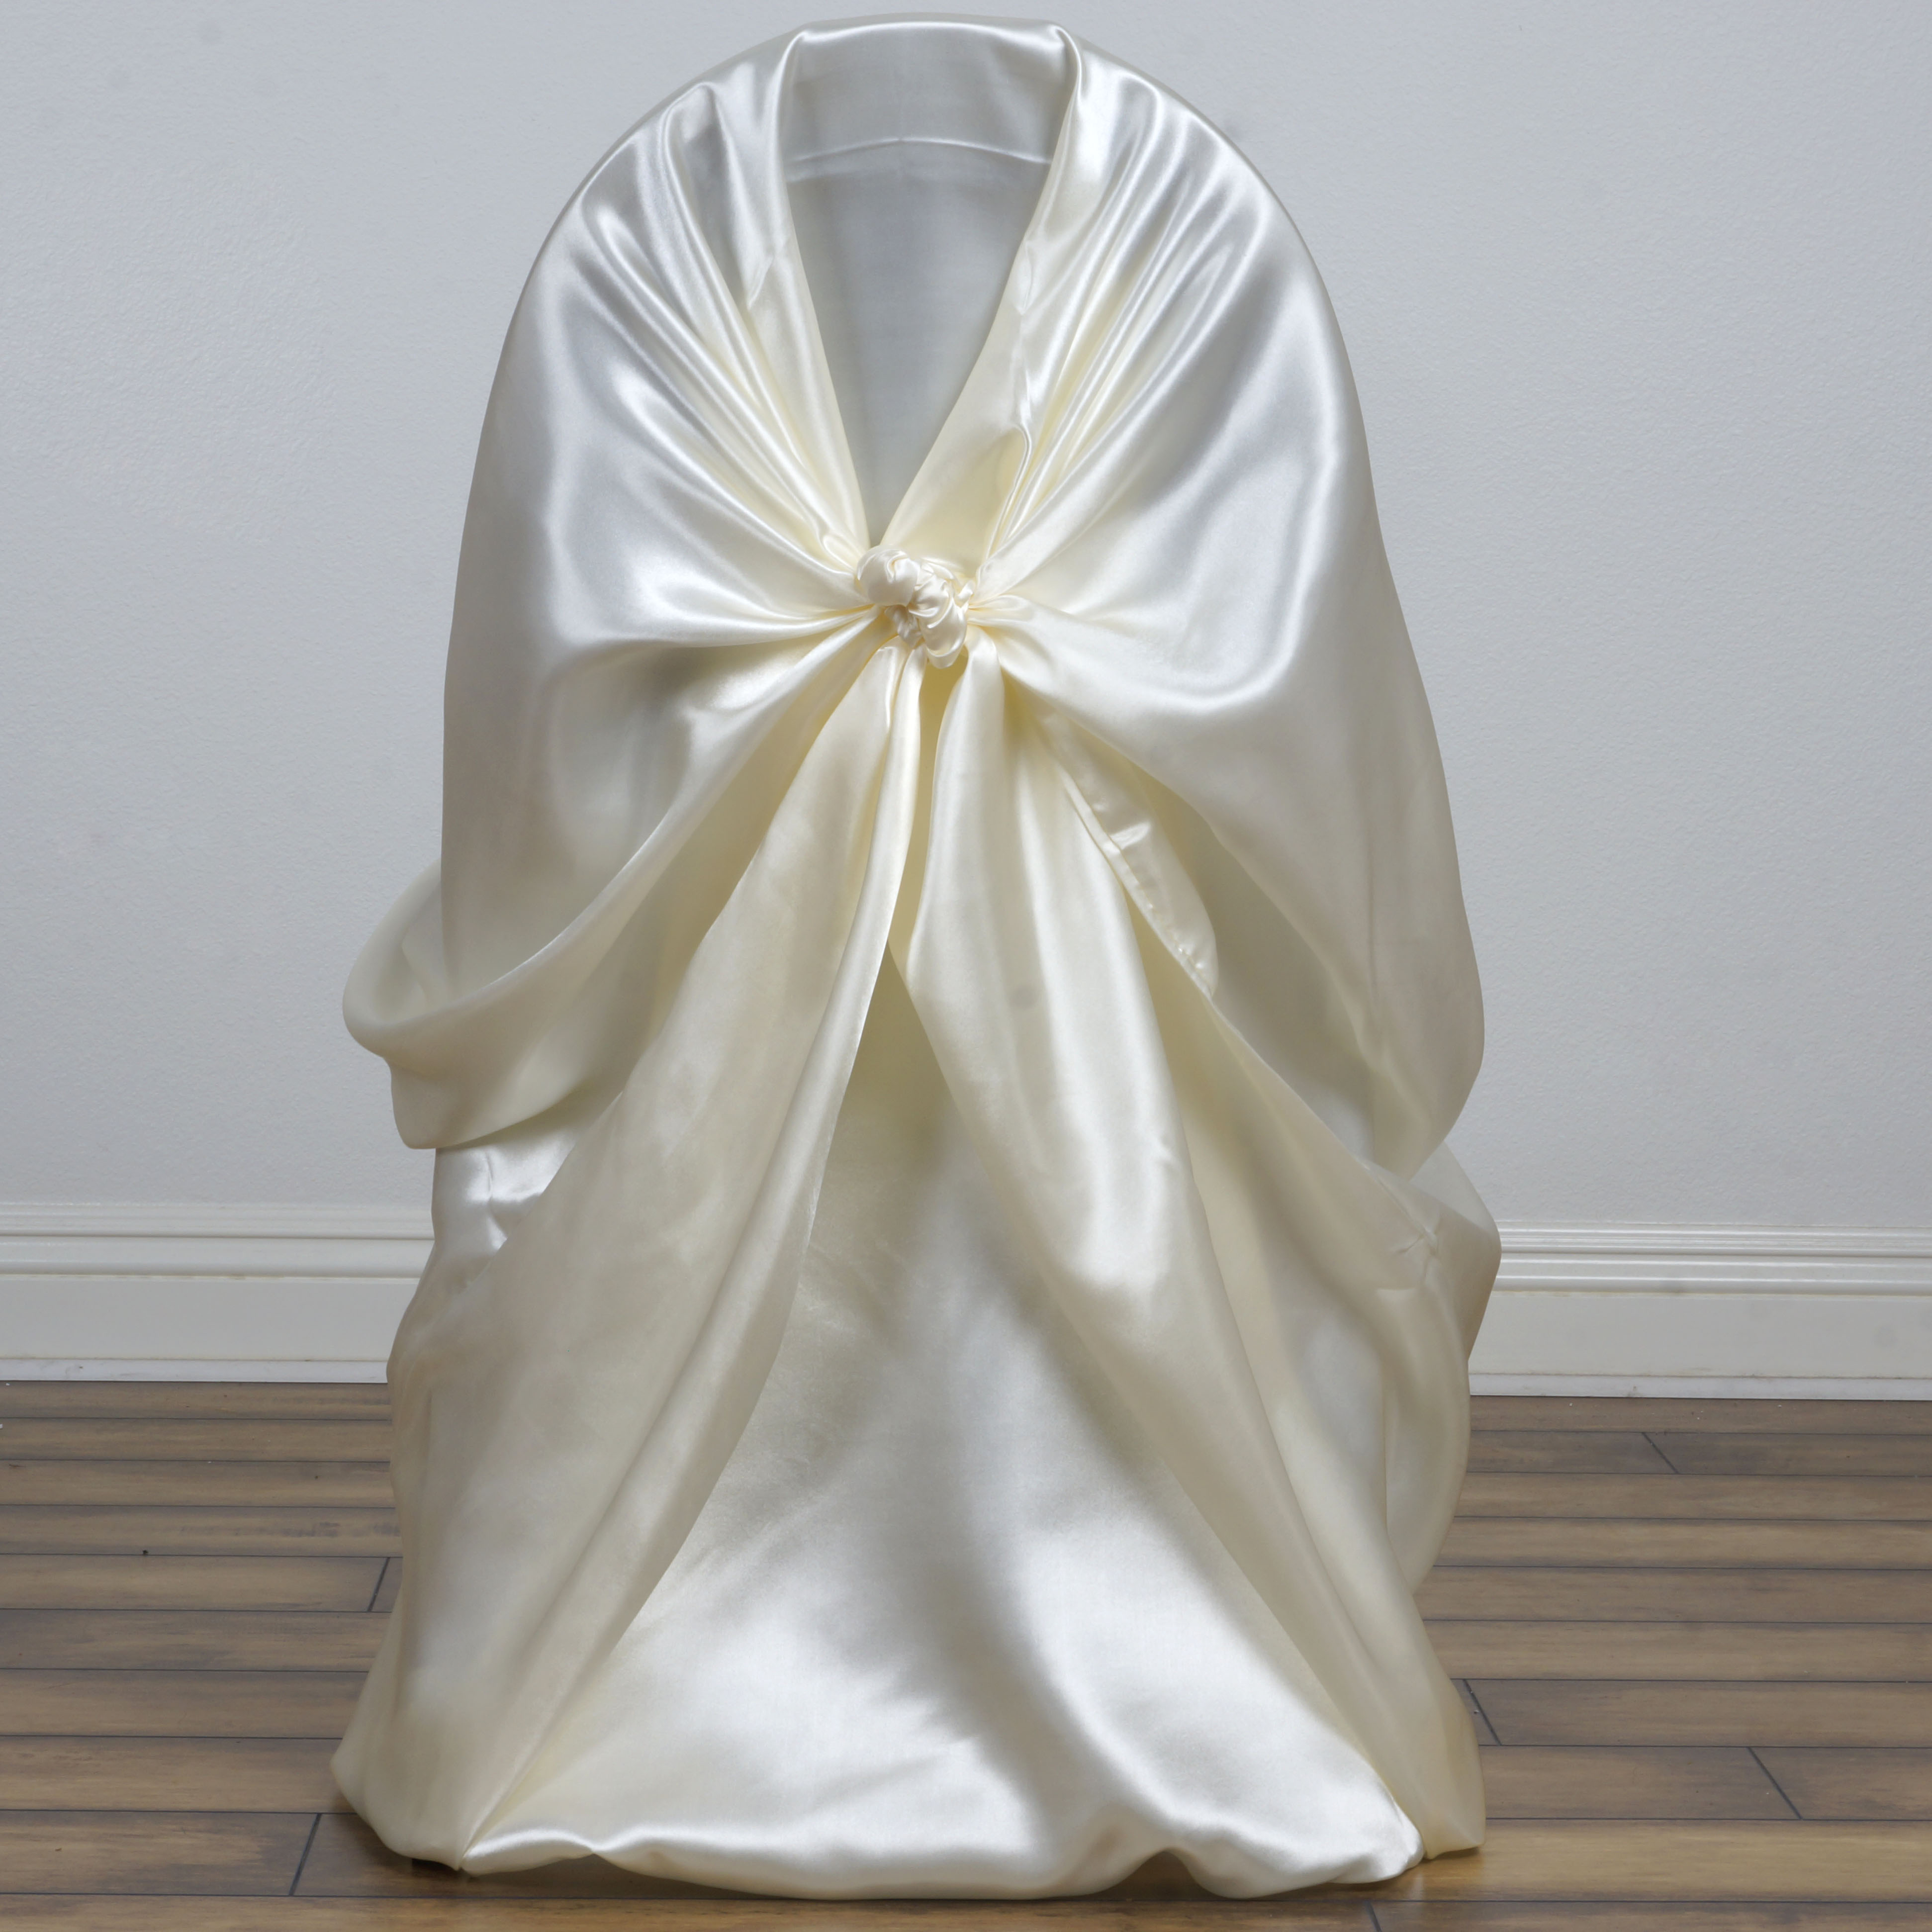 50 Universal Self Tie SATIN CHAIR COVERS for any kind of CHAIRS